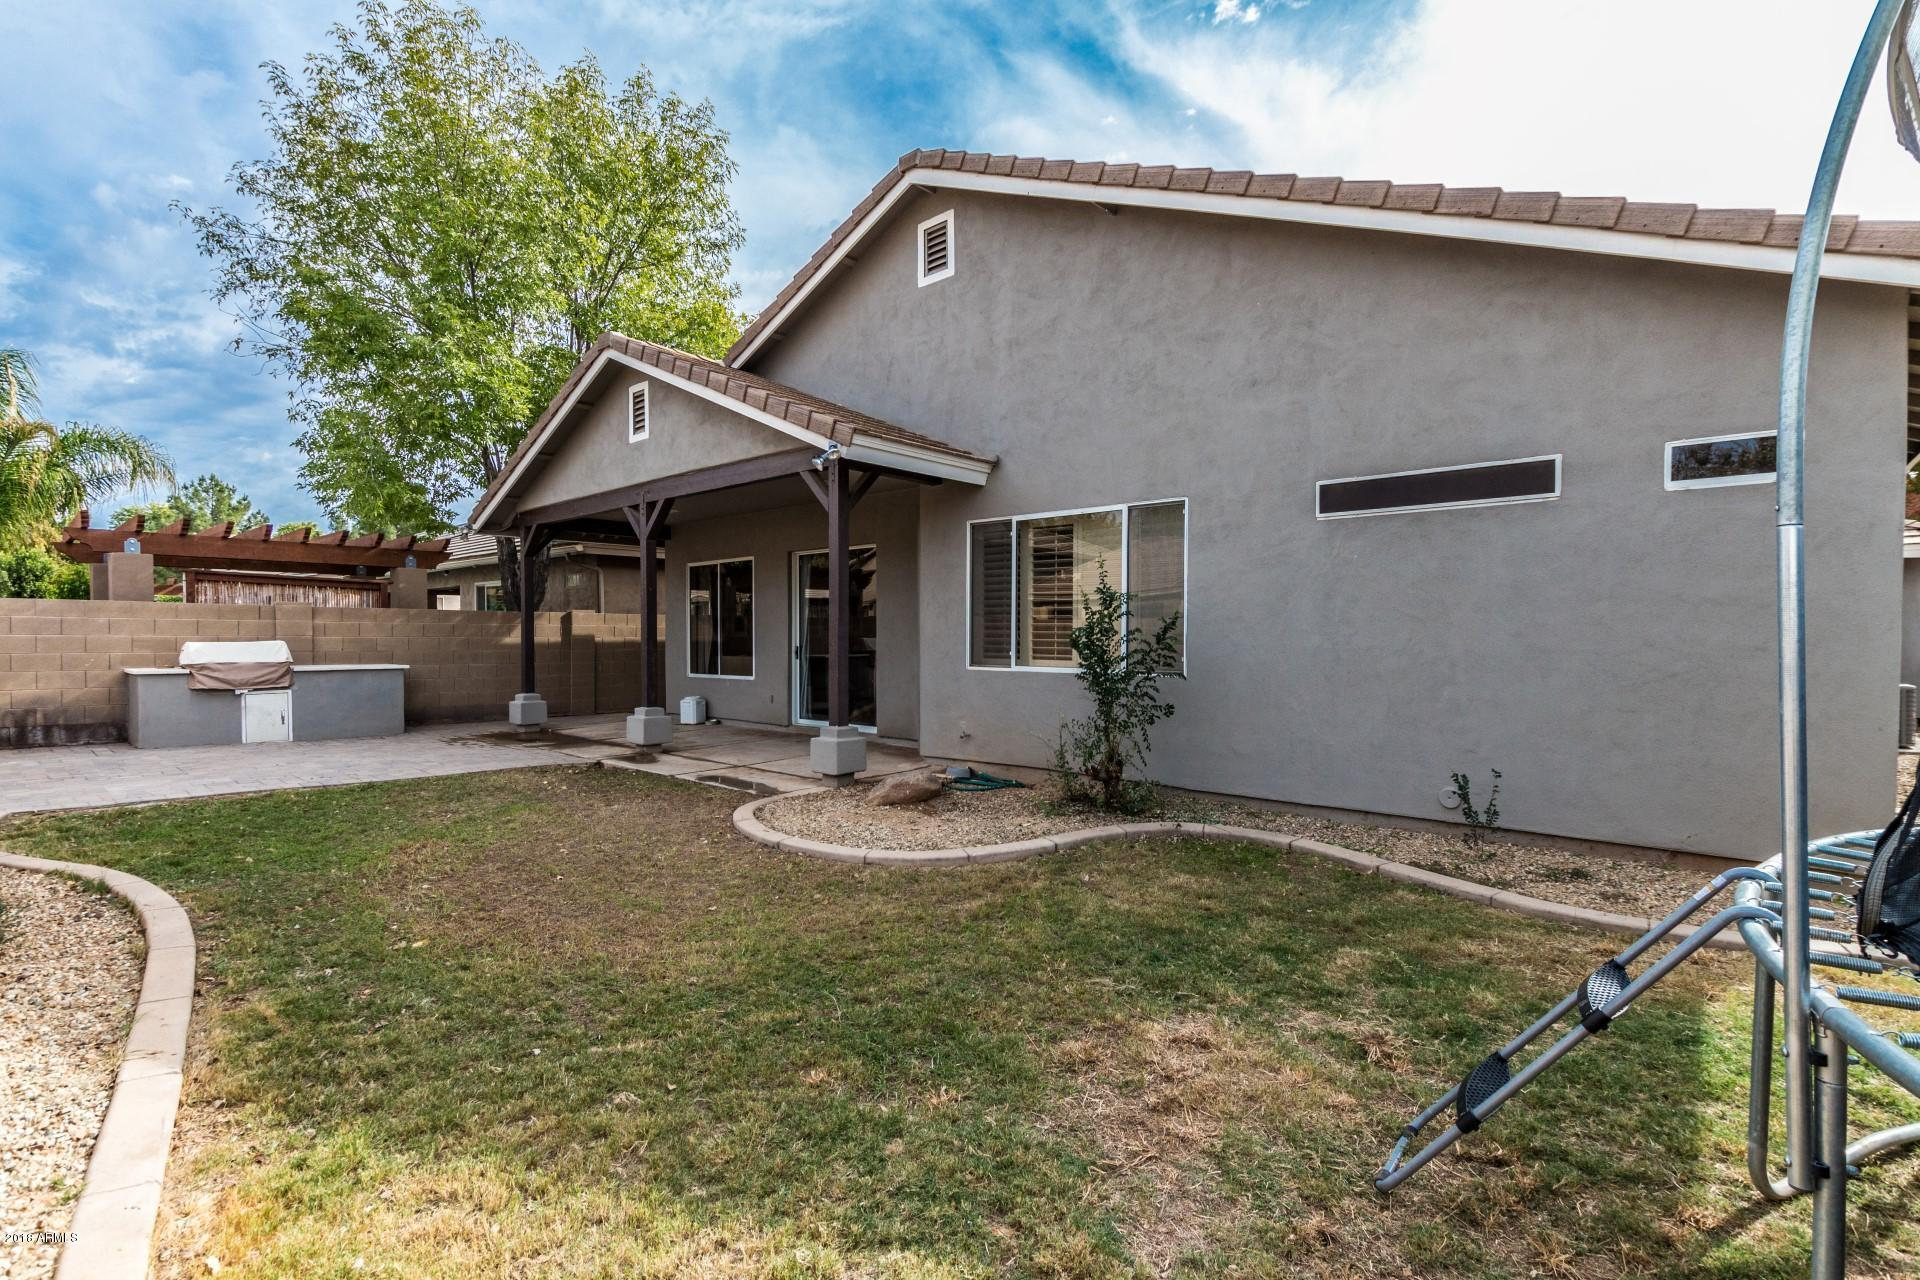 MLS 5851831 3554 E WASHINGTON Avenue, Gilbert, AZ 85234 Gilbert AZ Higley Groves